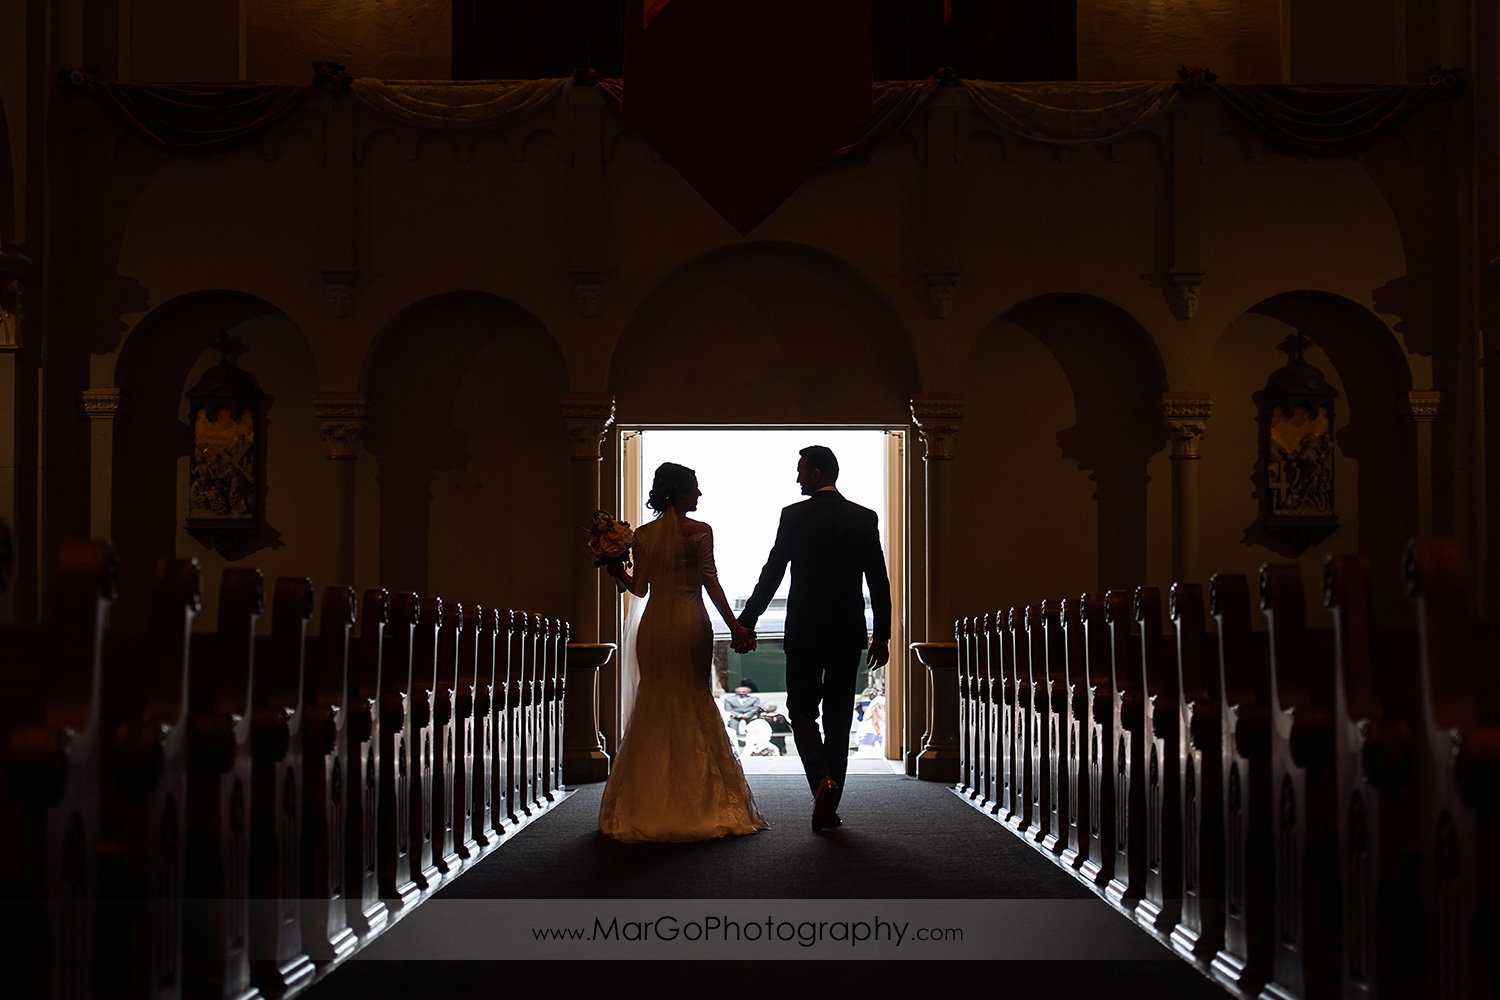 silhouette of bride and groom walking down the aisle after wedding ceremony at Oakland Church of Saint Leo the Great